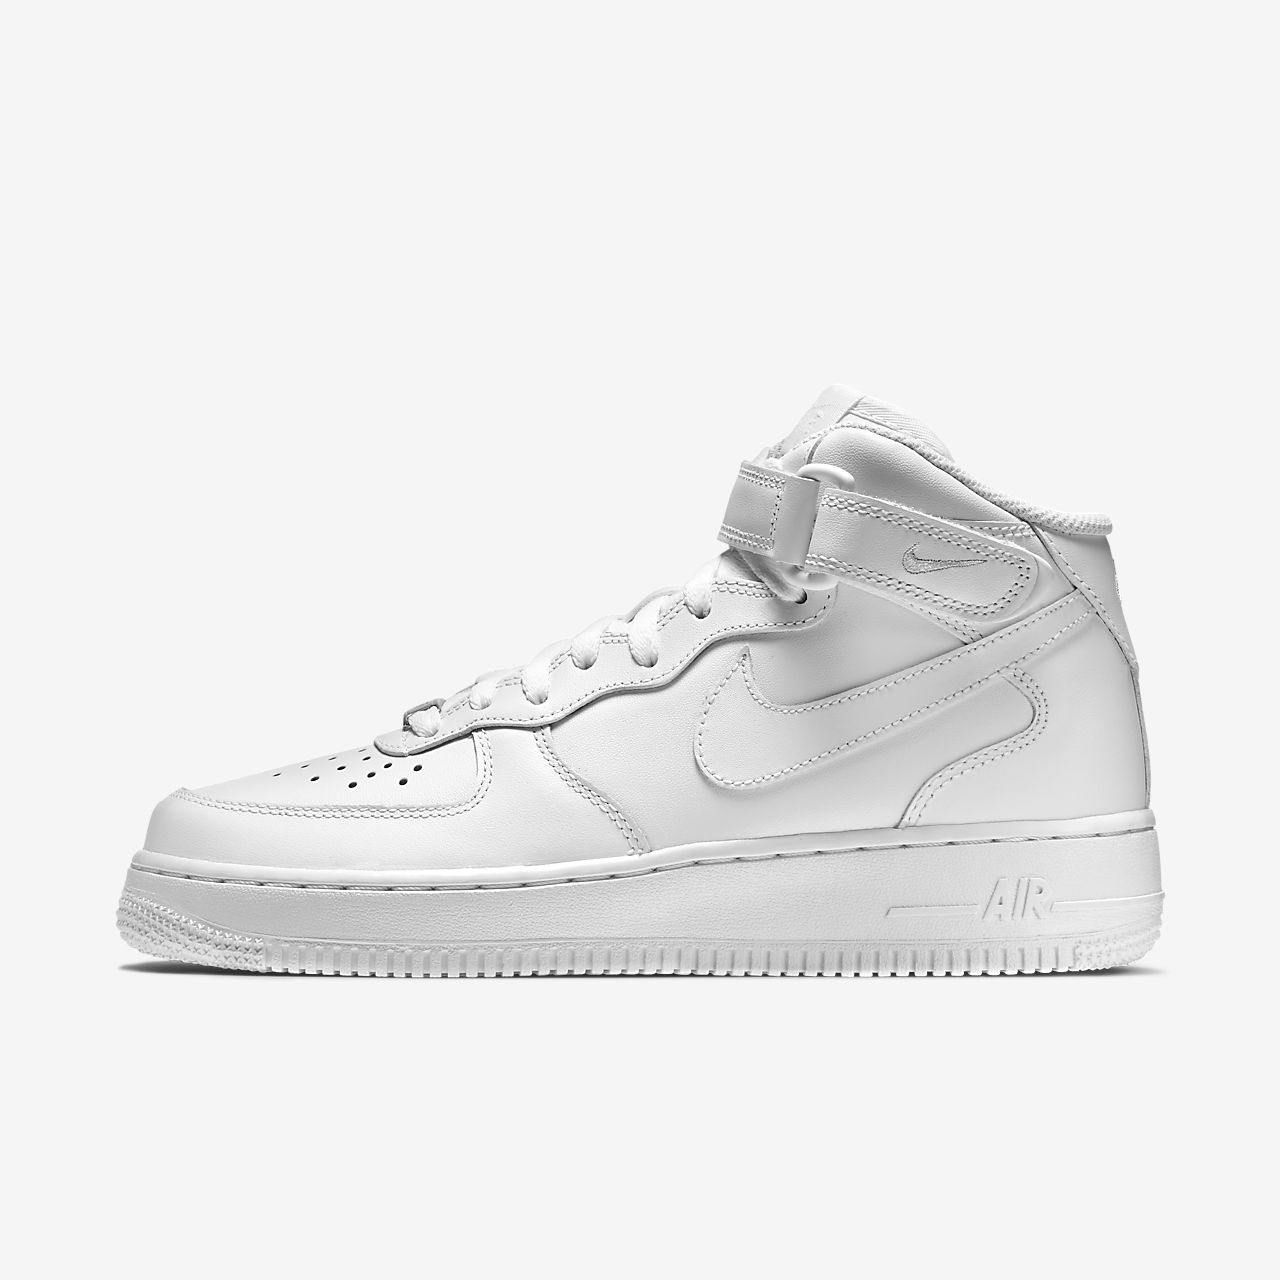 Nike Air Force 1 MID DONNA MISURA UK 4